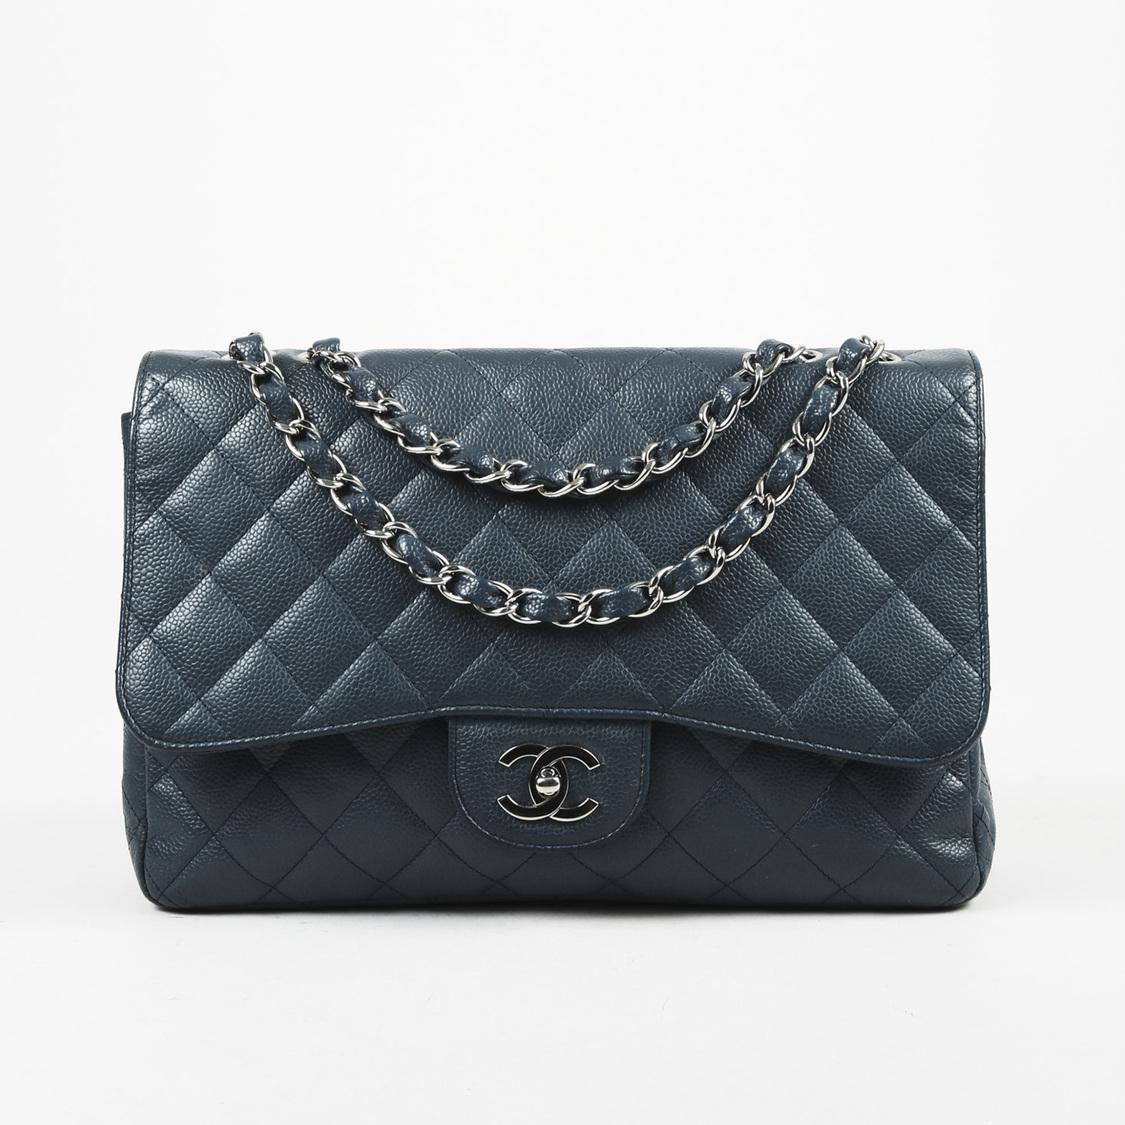 54fa7256f8a0 Lyst - Chanel Quilted Caviar Leather Jumbo Flap Bag in Blue